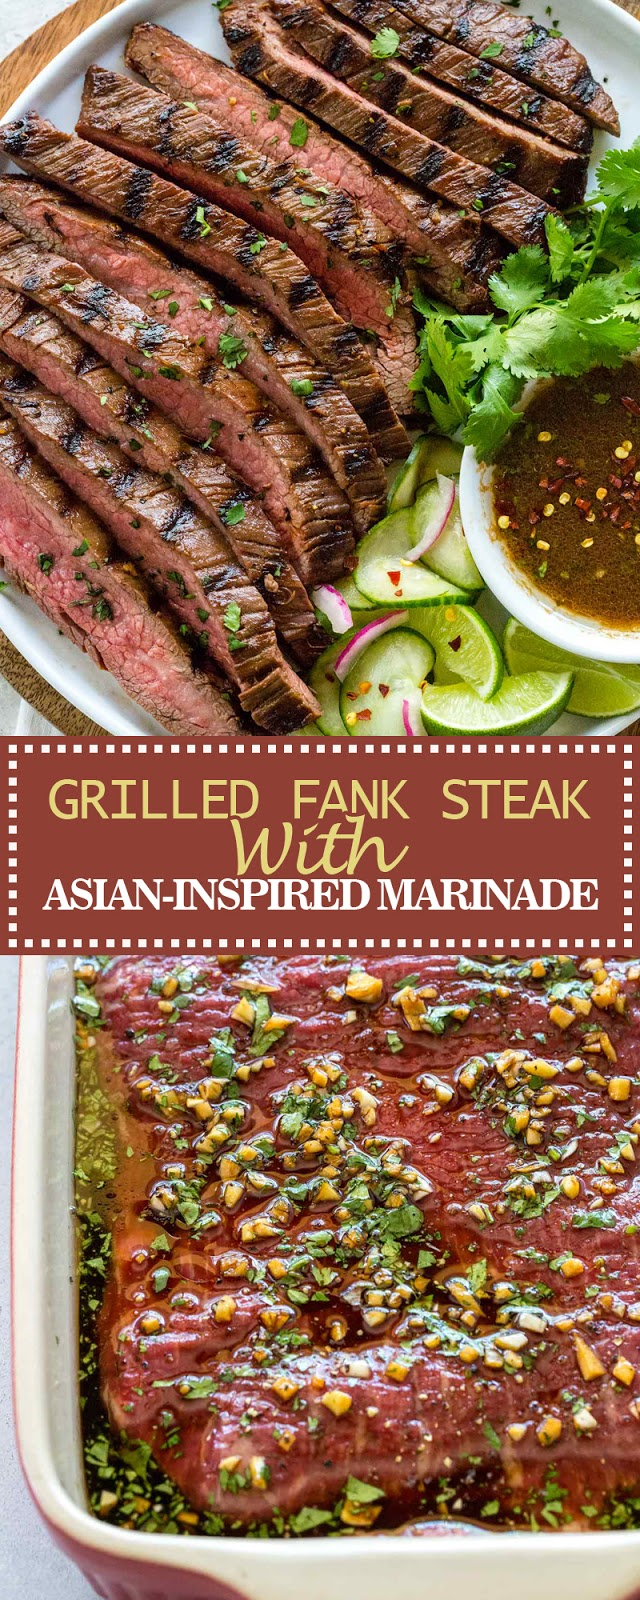 GRILLED FLANK STEAK WITH ASIAN-INSPIRED MARINADE